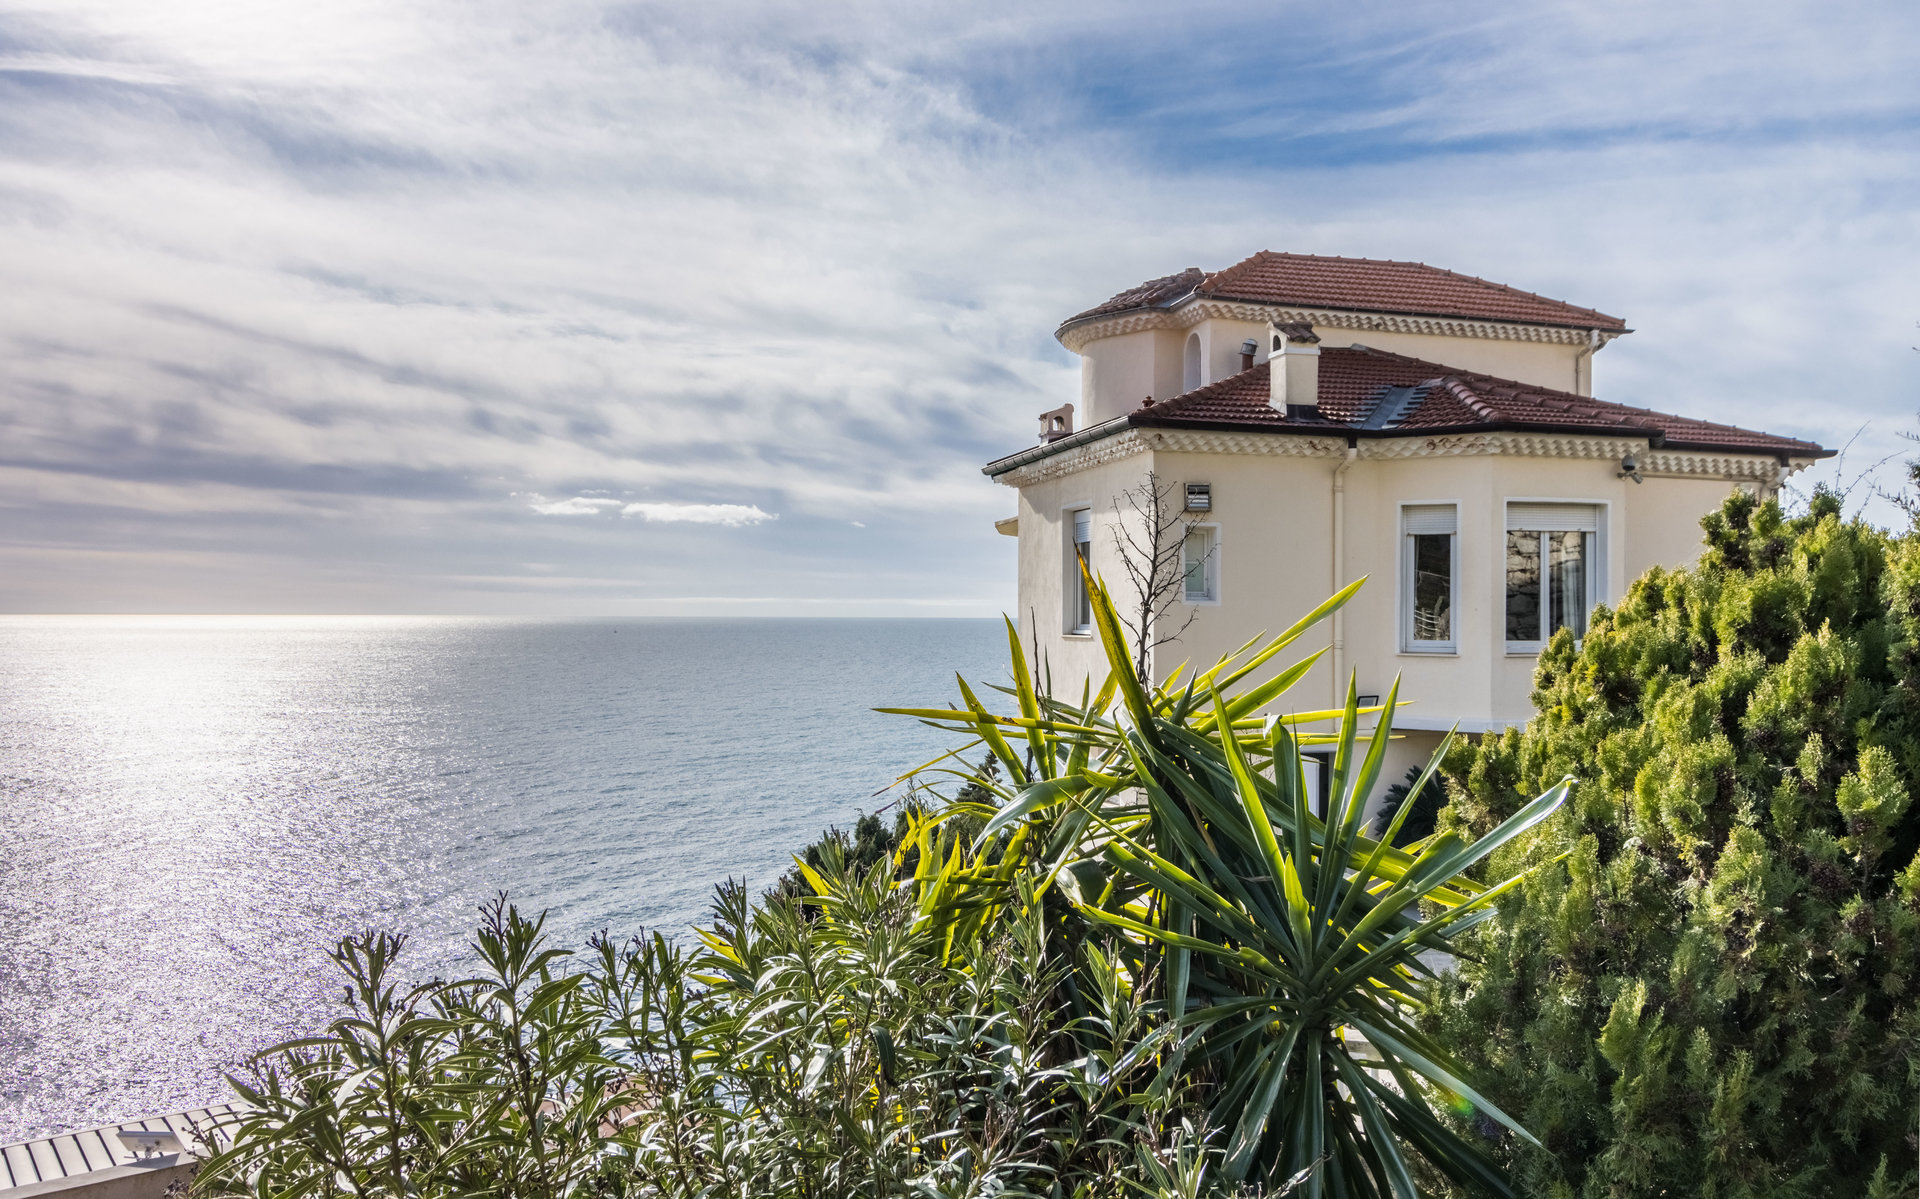 Cap de Nice, exceptional villa with panoramic sea views, swimming pool and direct access to the sea.